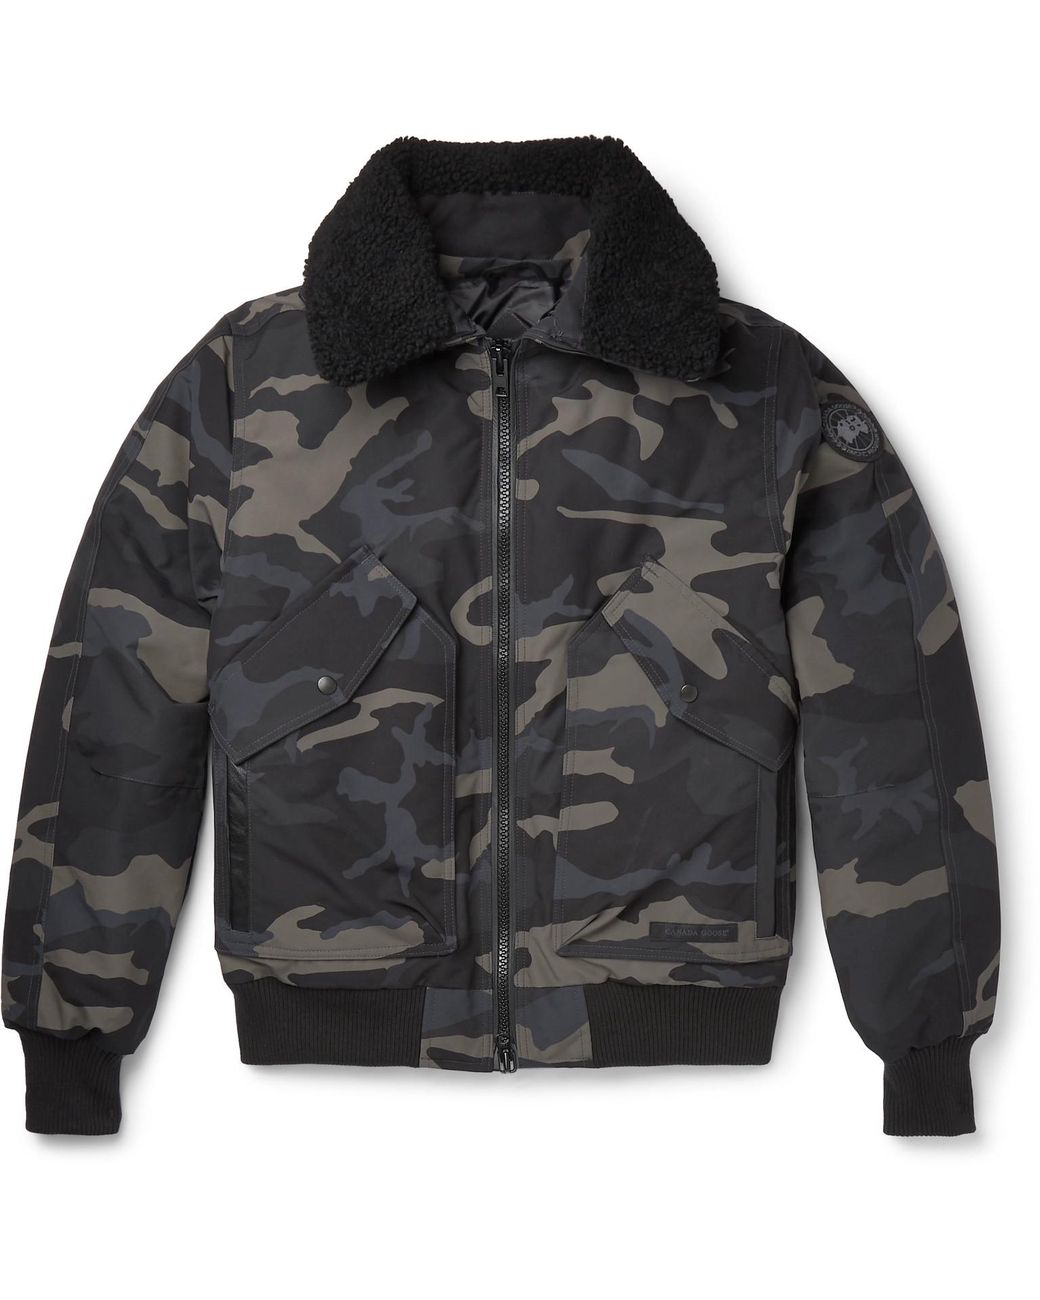 6b637479c8142 Canada Goose Bromley Shearling-trimmed Camouflage-print Shell Down Bomber  Jacket in Black for Men - Lyst